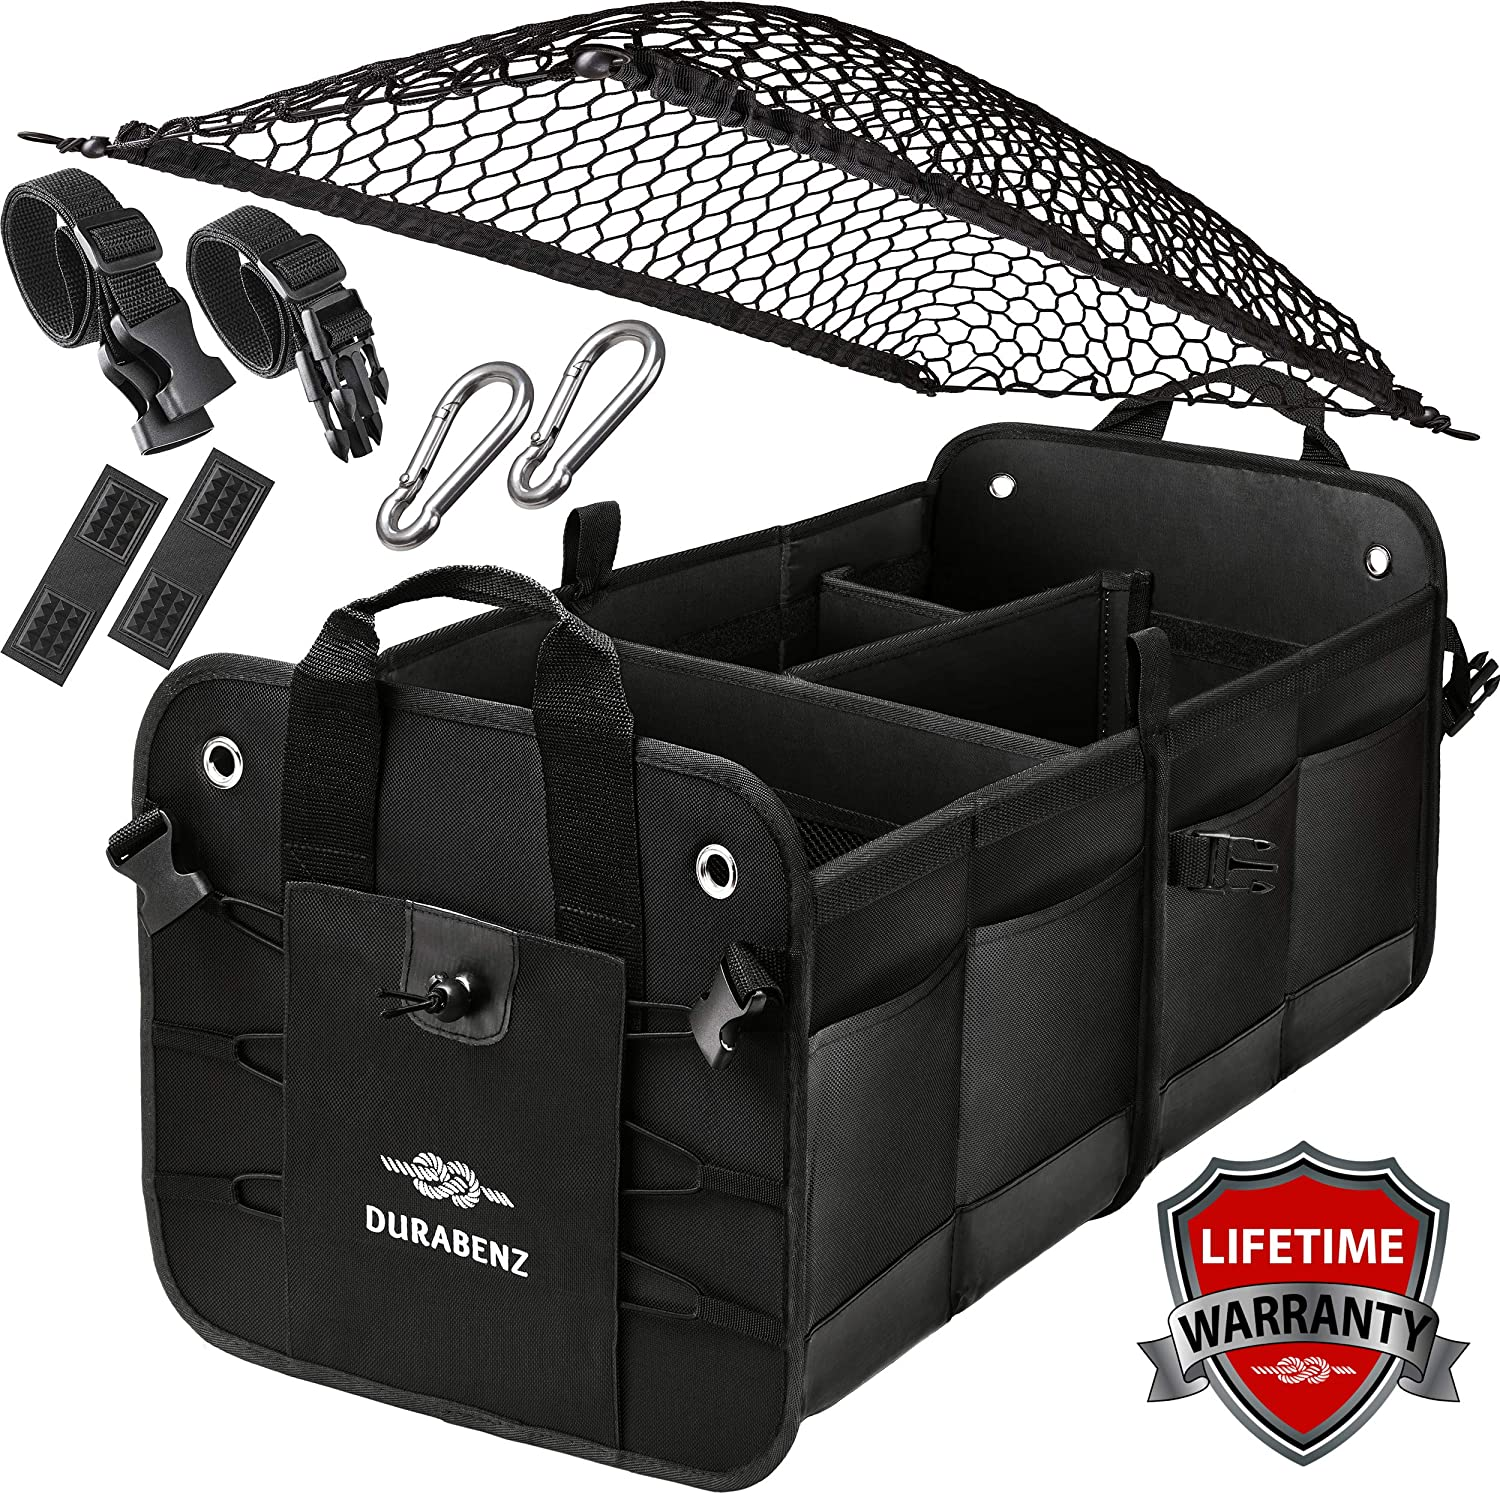 Car Trunk Organizer For SUV - Minivan - Sedan With Net Cover And Stainless Hooks - Black, Durabenz